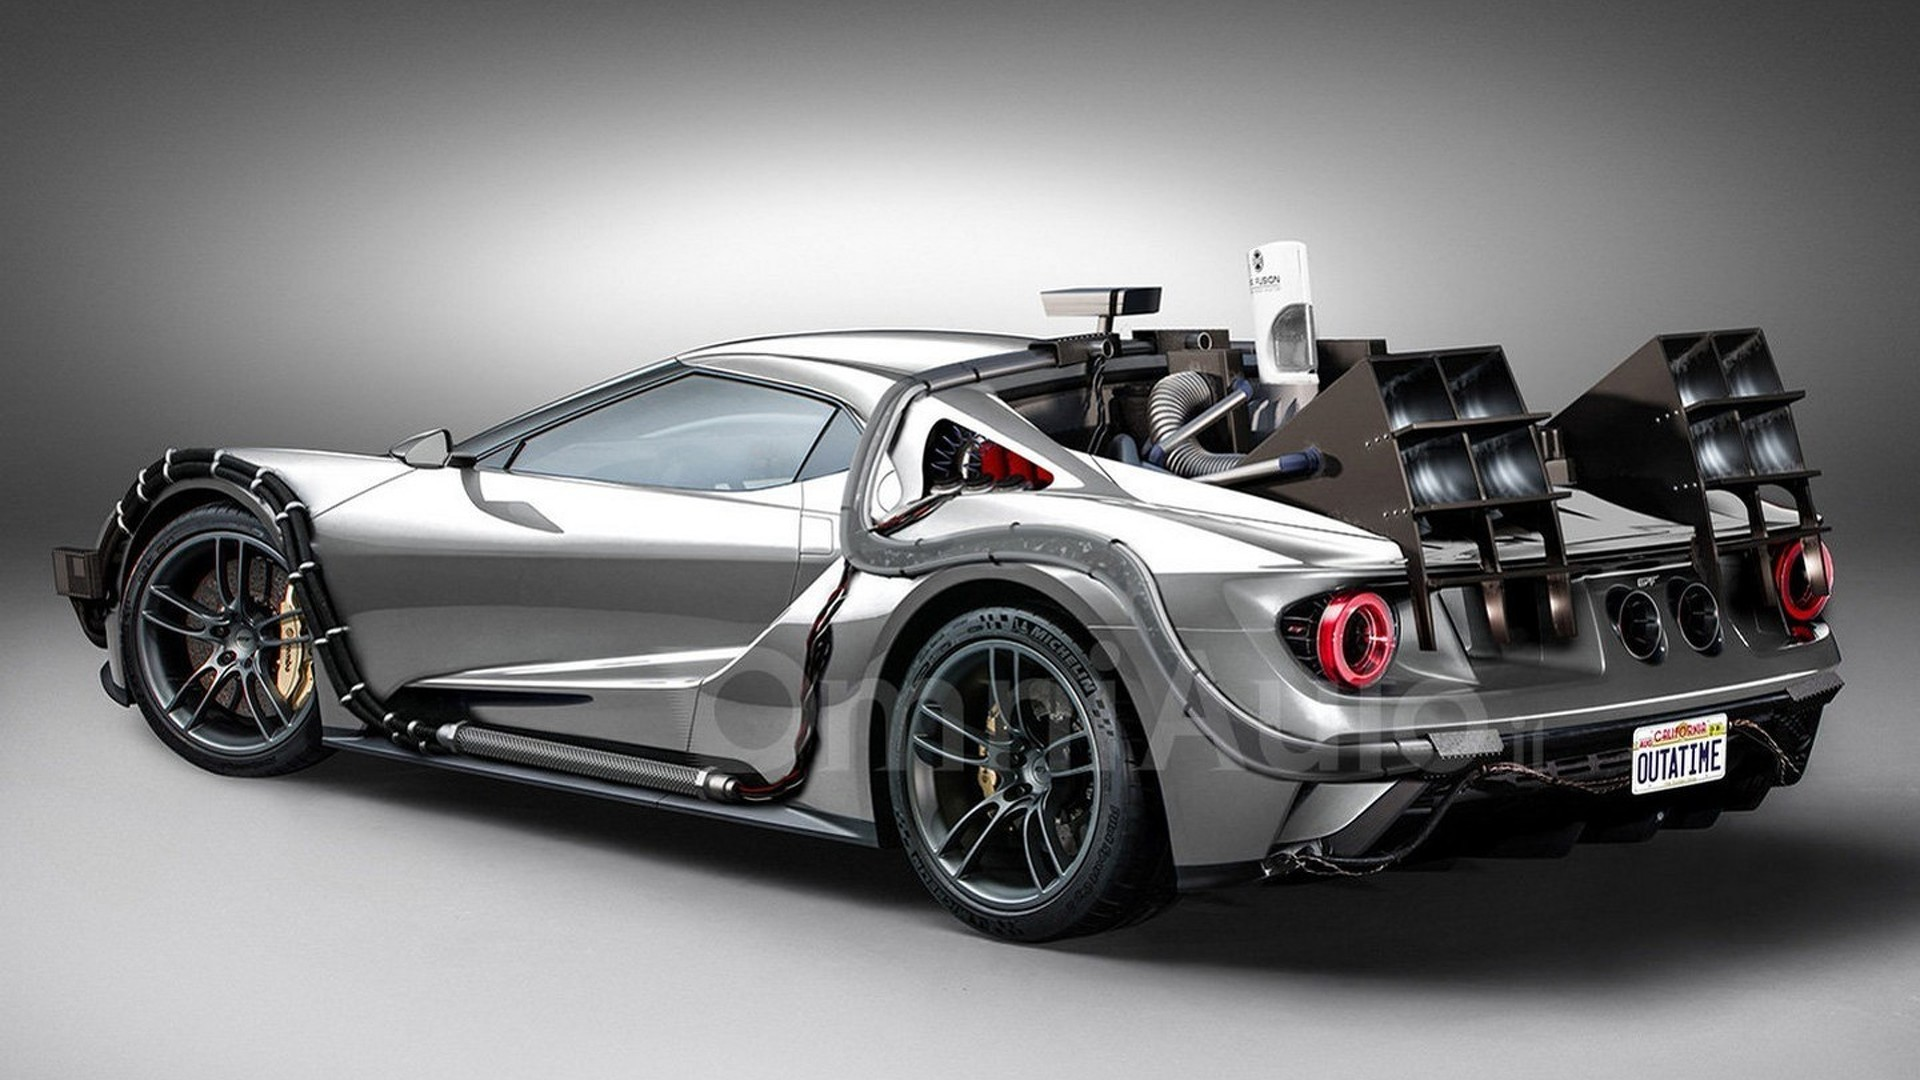 Ford GT concept imagined as time machine from Back to the Future